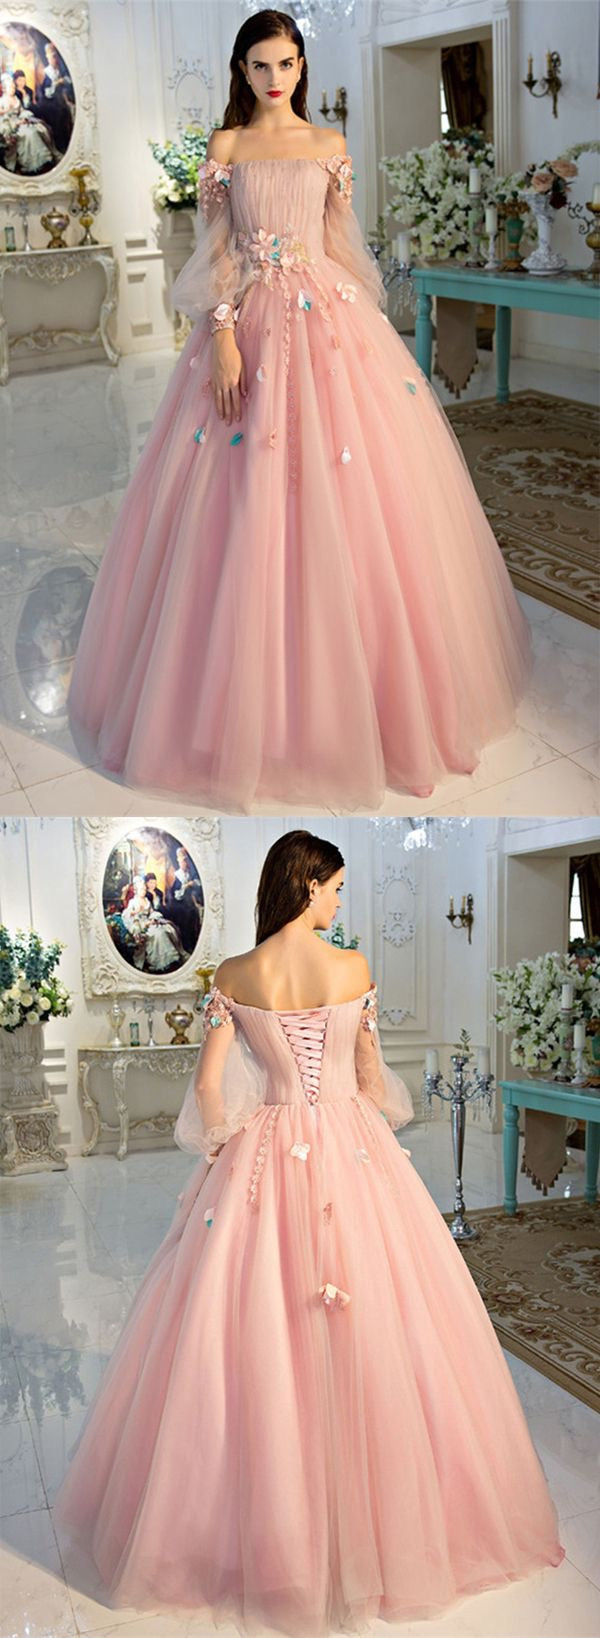 Long Sleeve Prom Dresses Pearl Pink Ball Gown Long Floral Fairy Prom ...